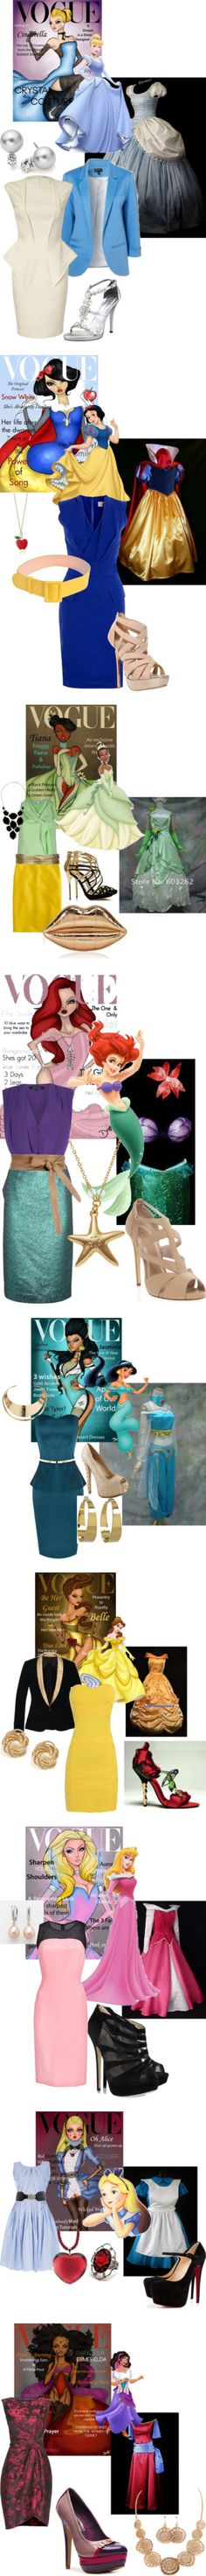 """Girls night out Disney Style"" by sugar04 on Polyvore"